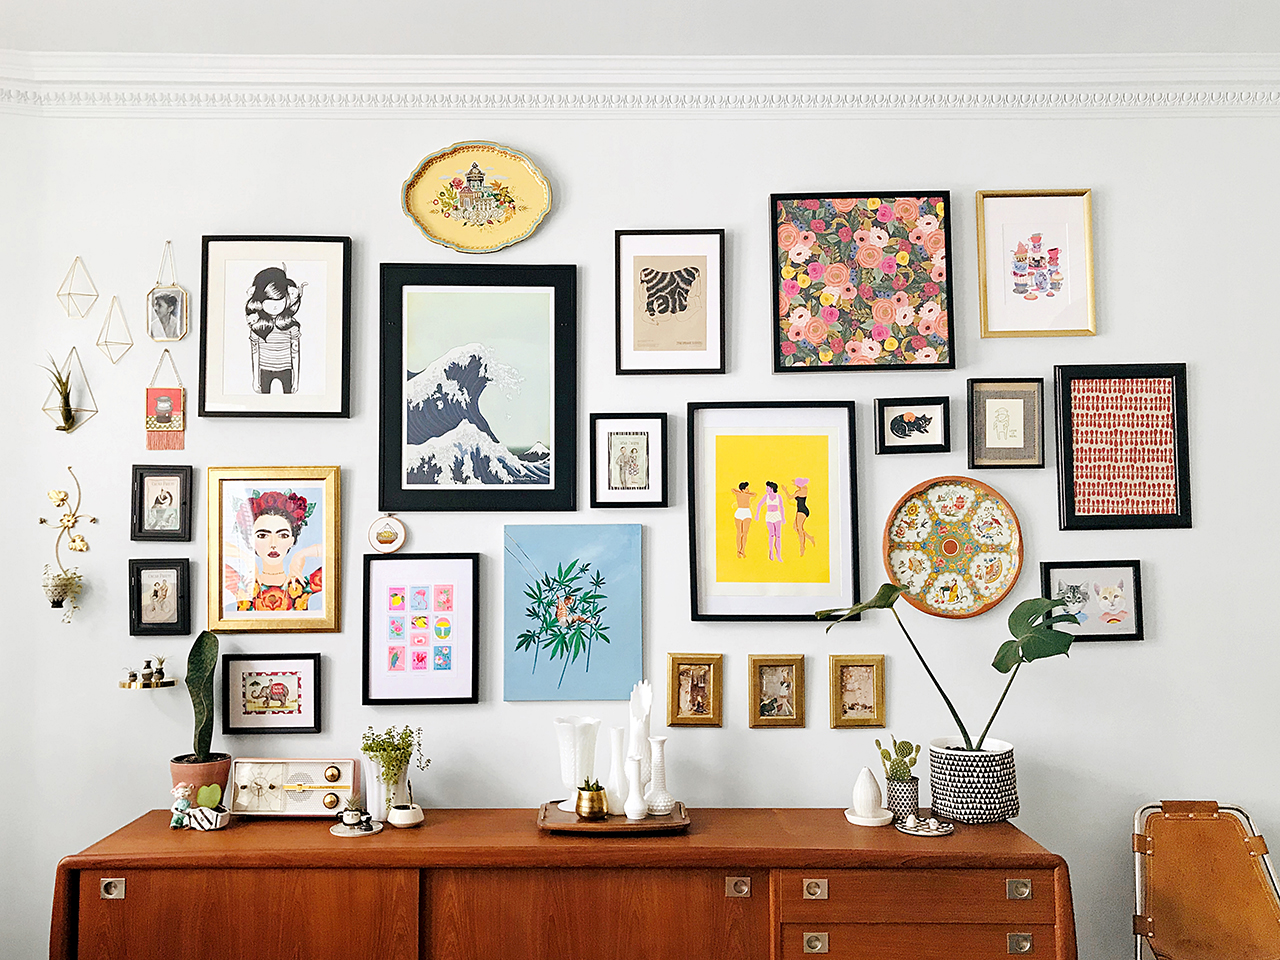 gallery wall- an assortment of art and objects hang on a wall above a sideboard